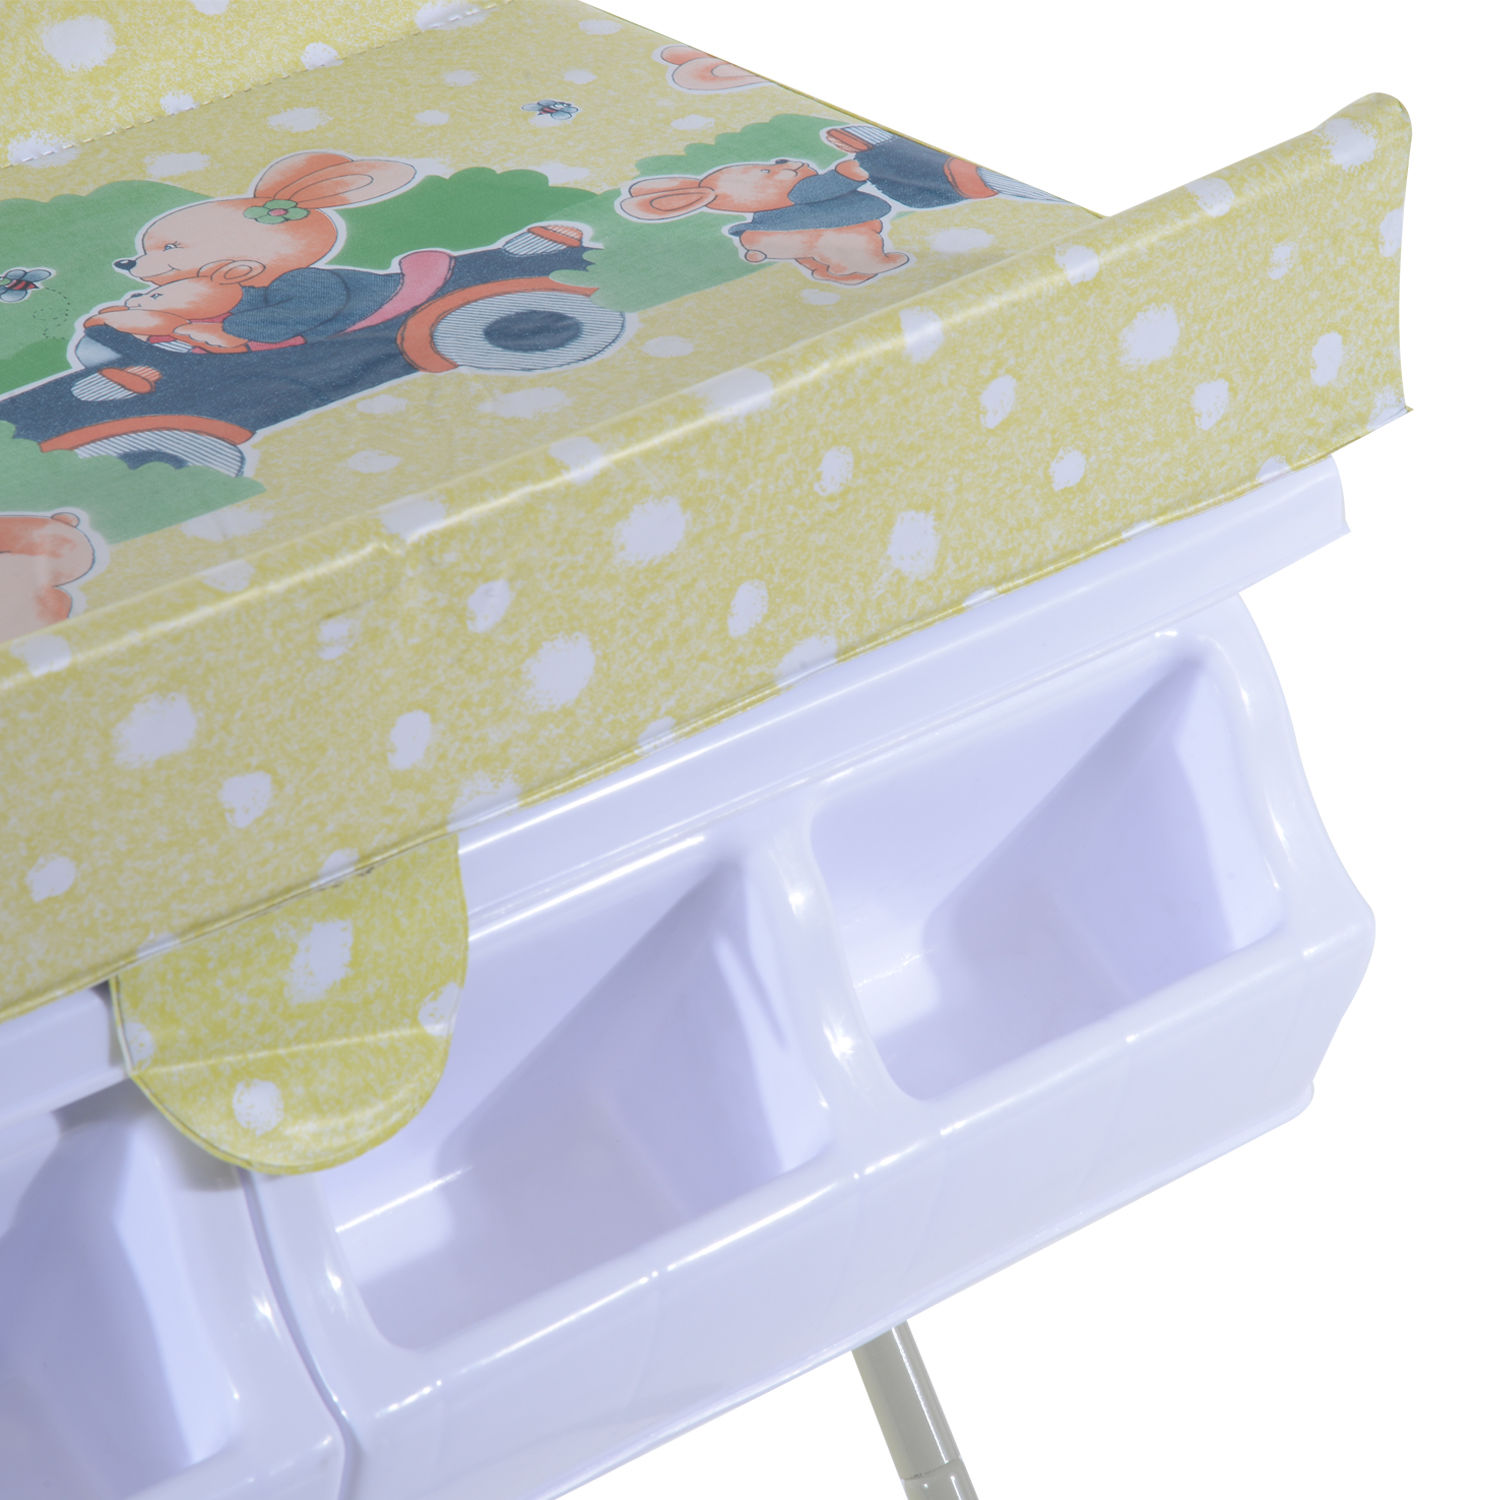 Baby Infant Changing Table Unit Rolling Bath Station Storage ...